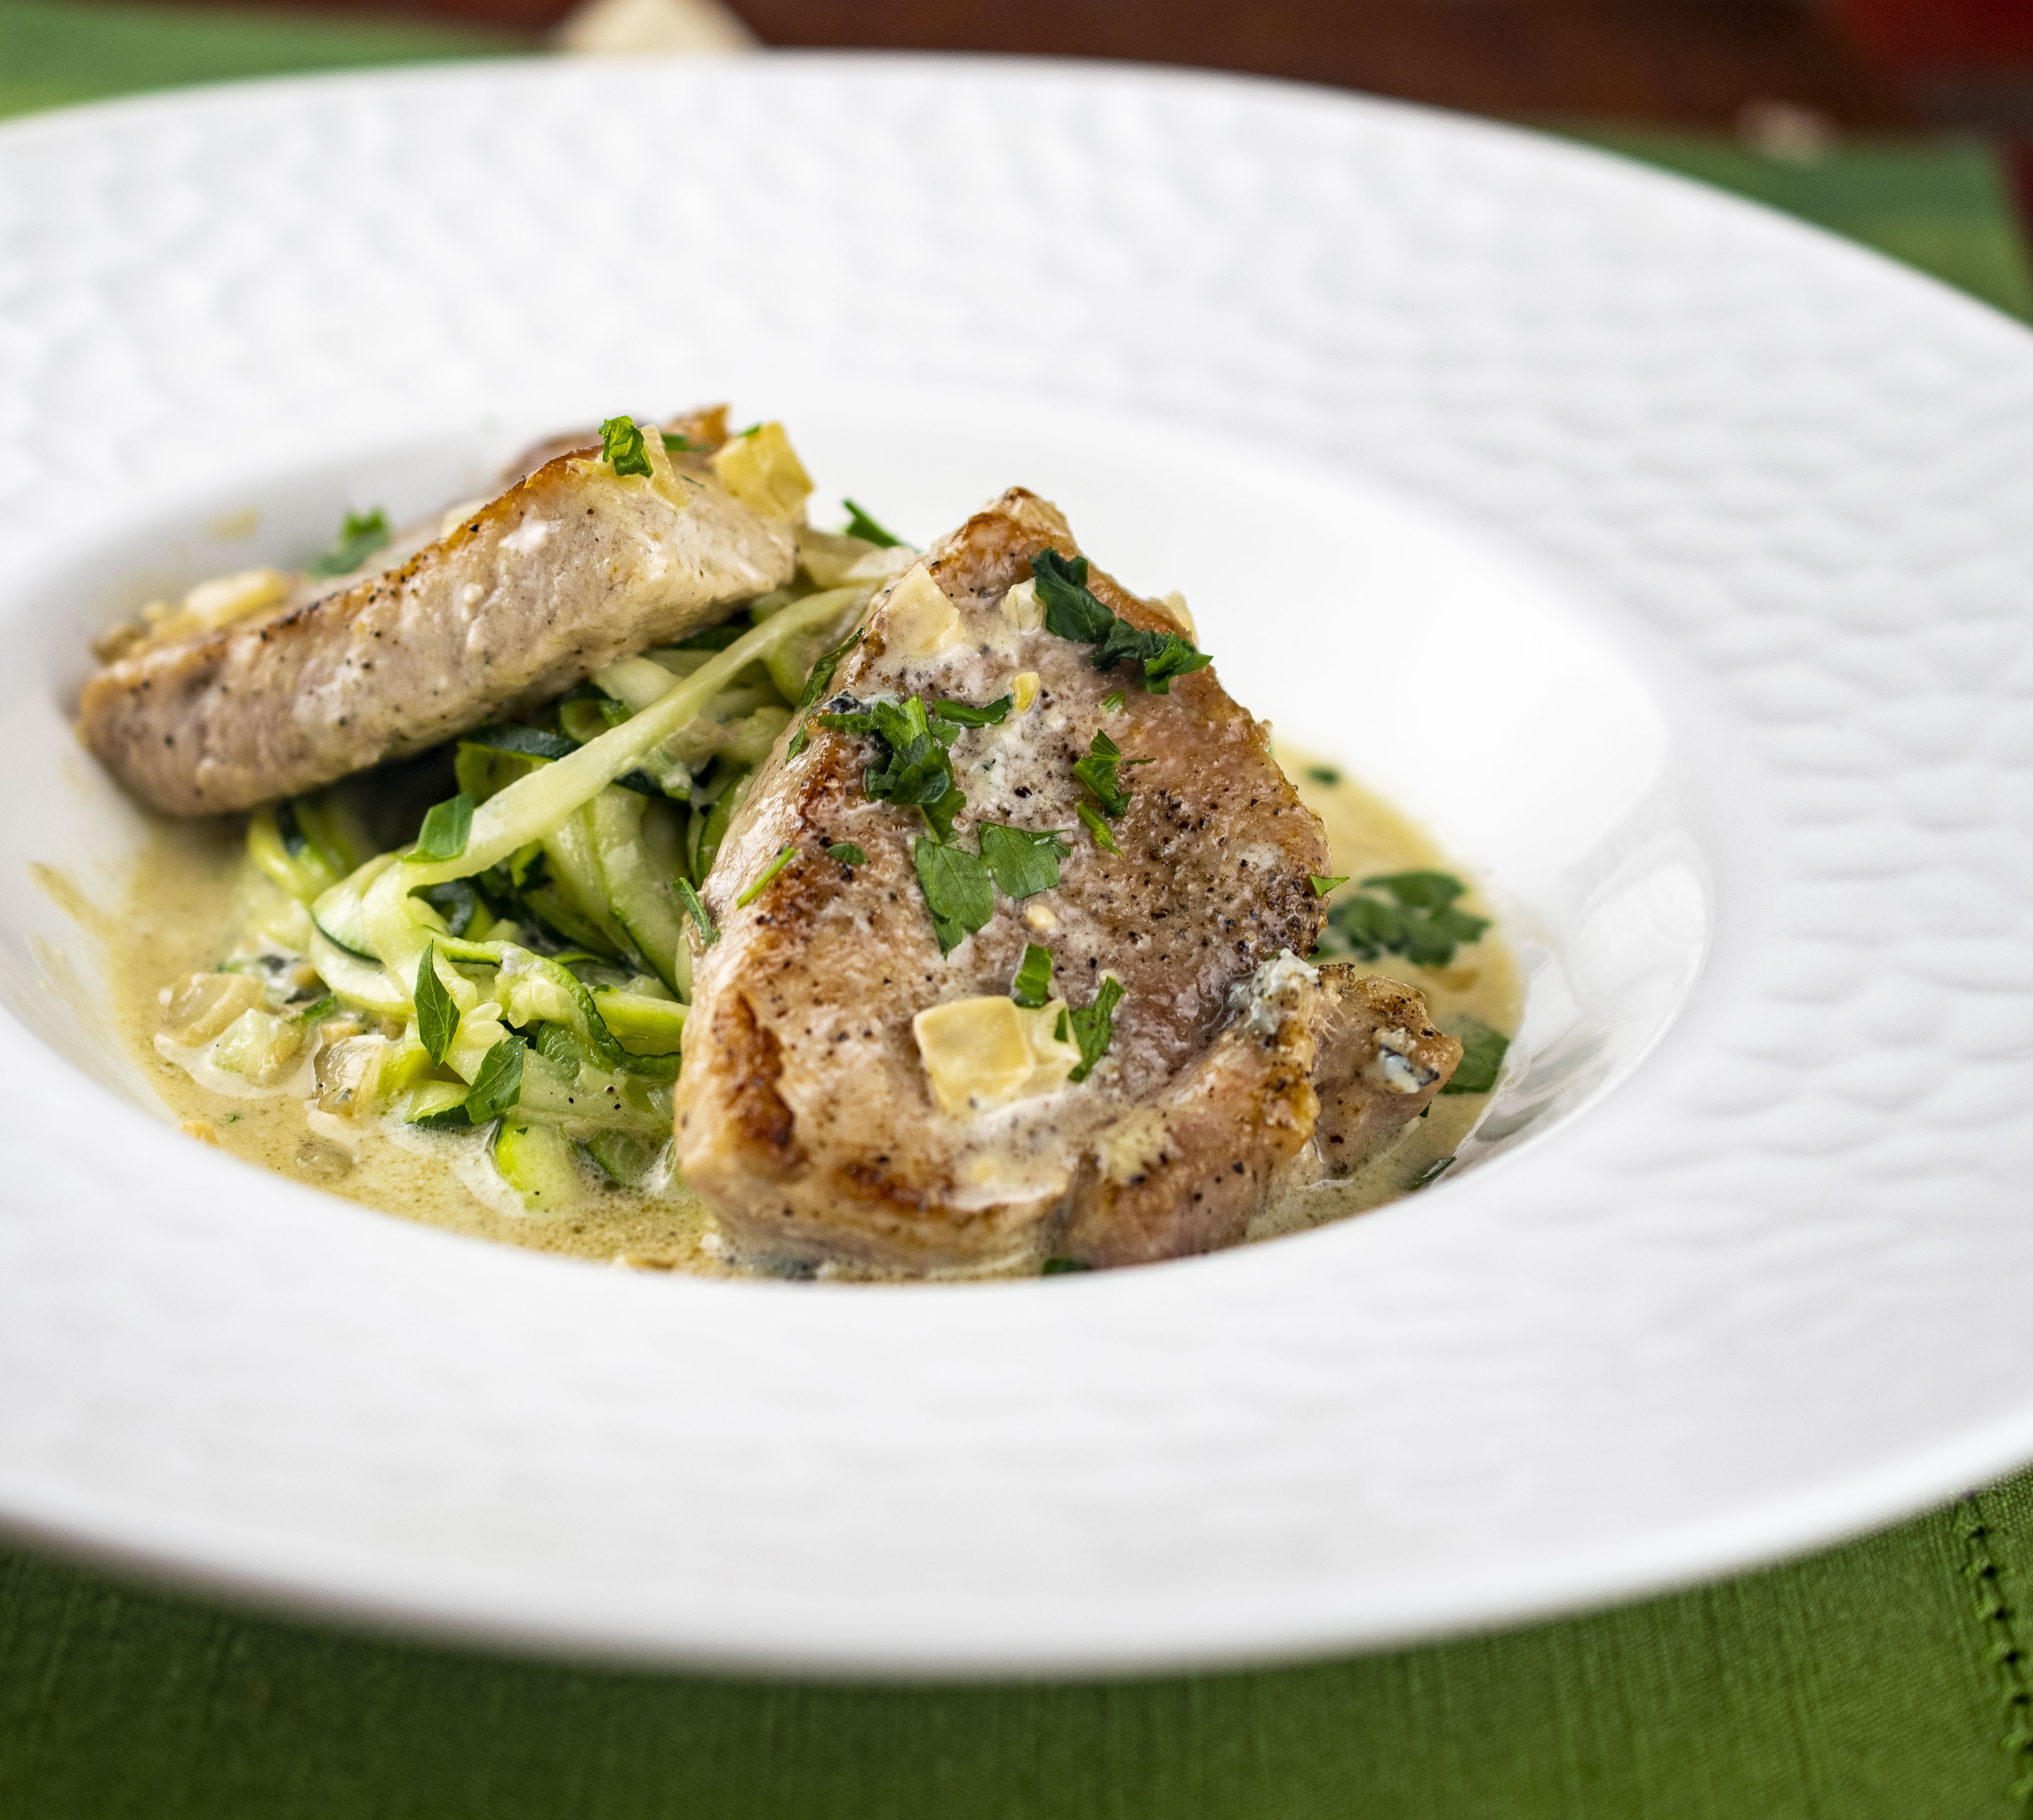 Pork medallions in blue cheese sauce served over spiralized zucchini